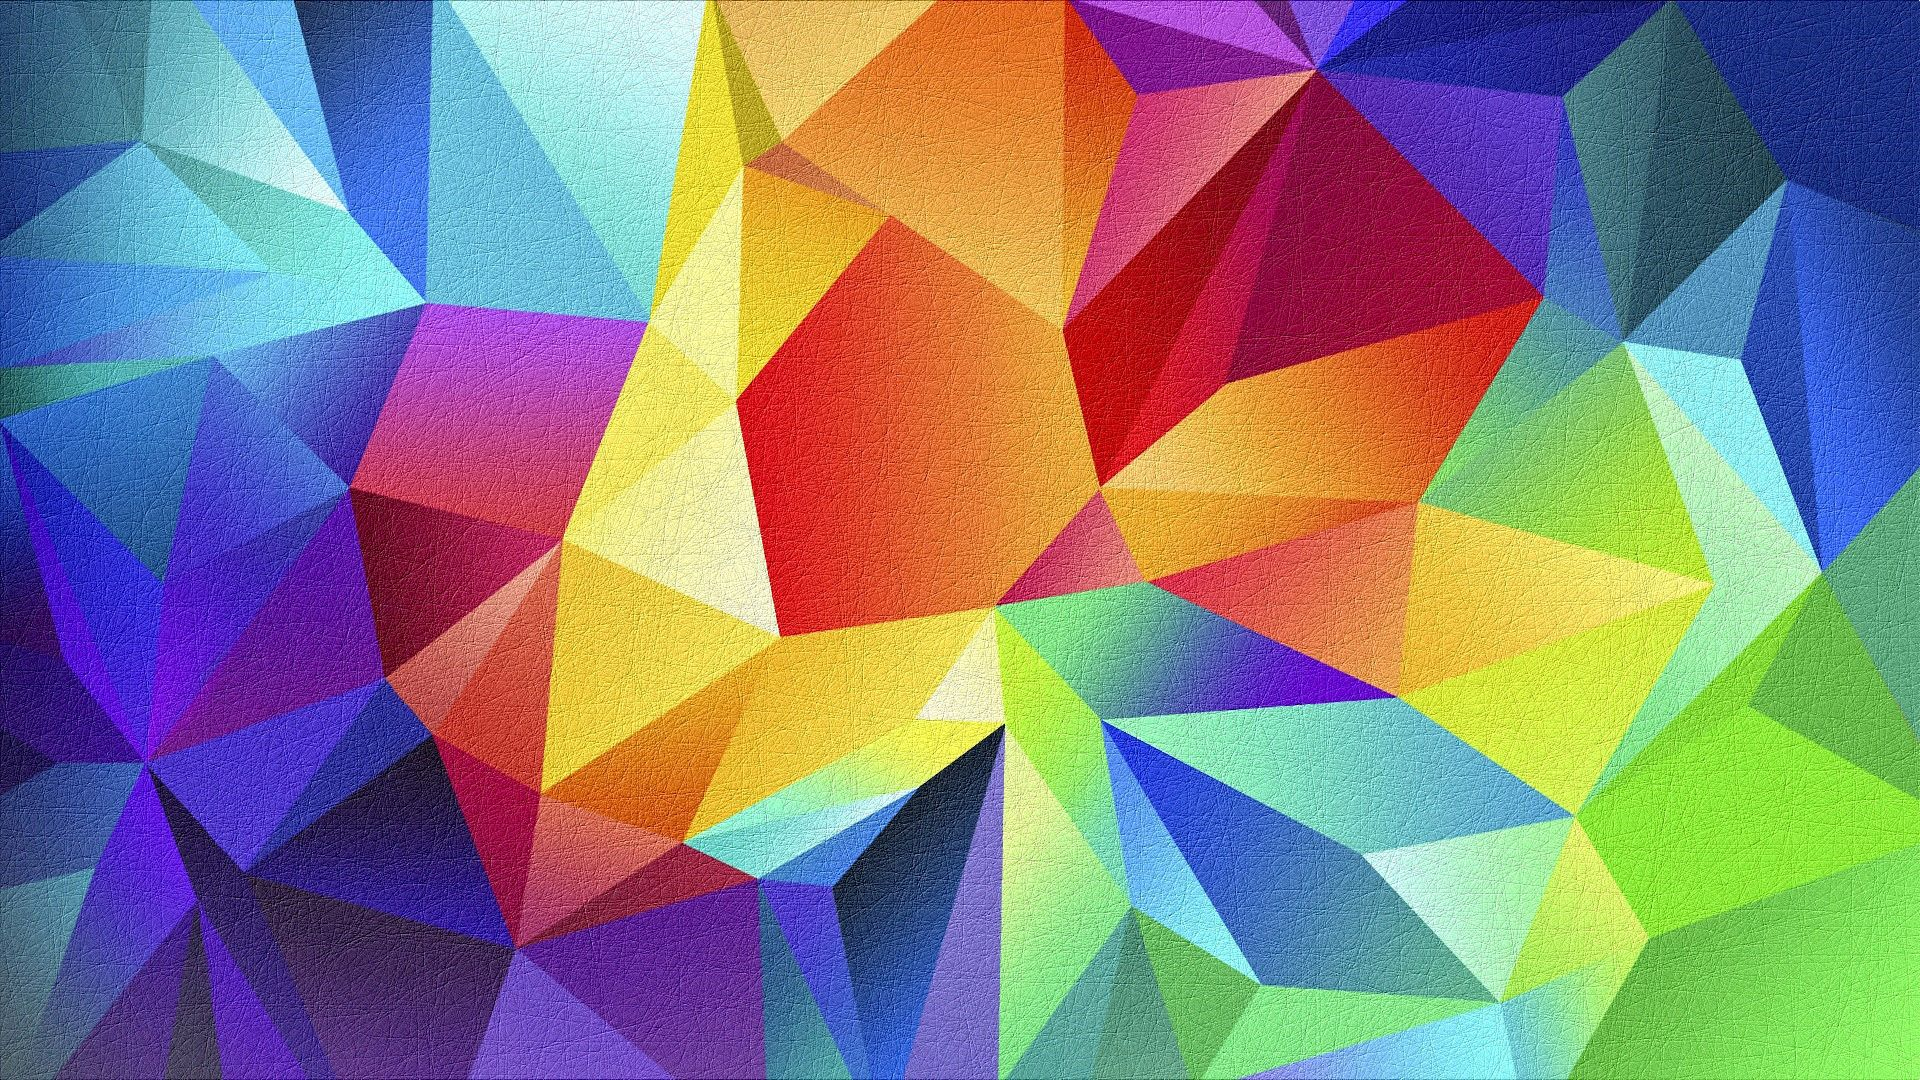 Colorful Geometric Desktop Wallpaper Google Search Geometric Shapes Wallpaper 3d Geometric Shapes Abstract